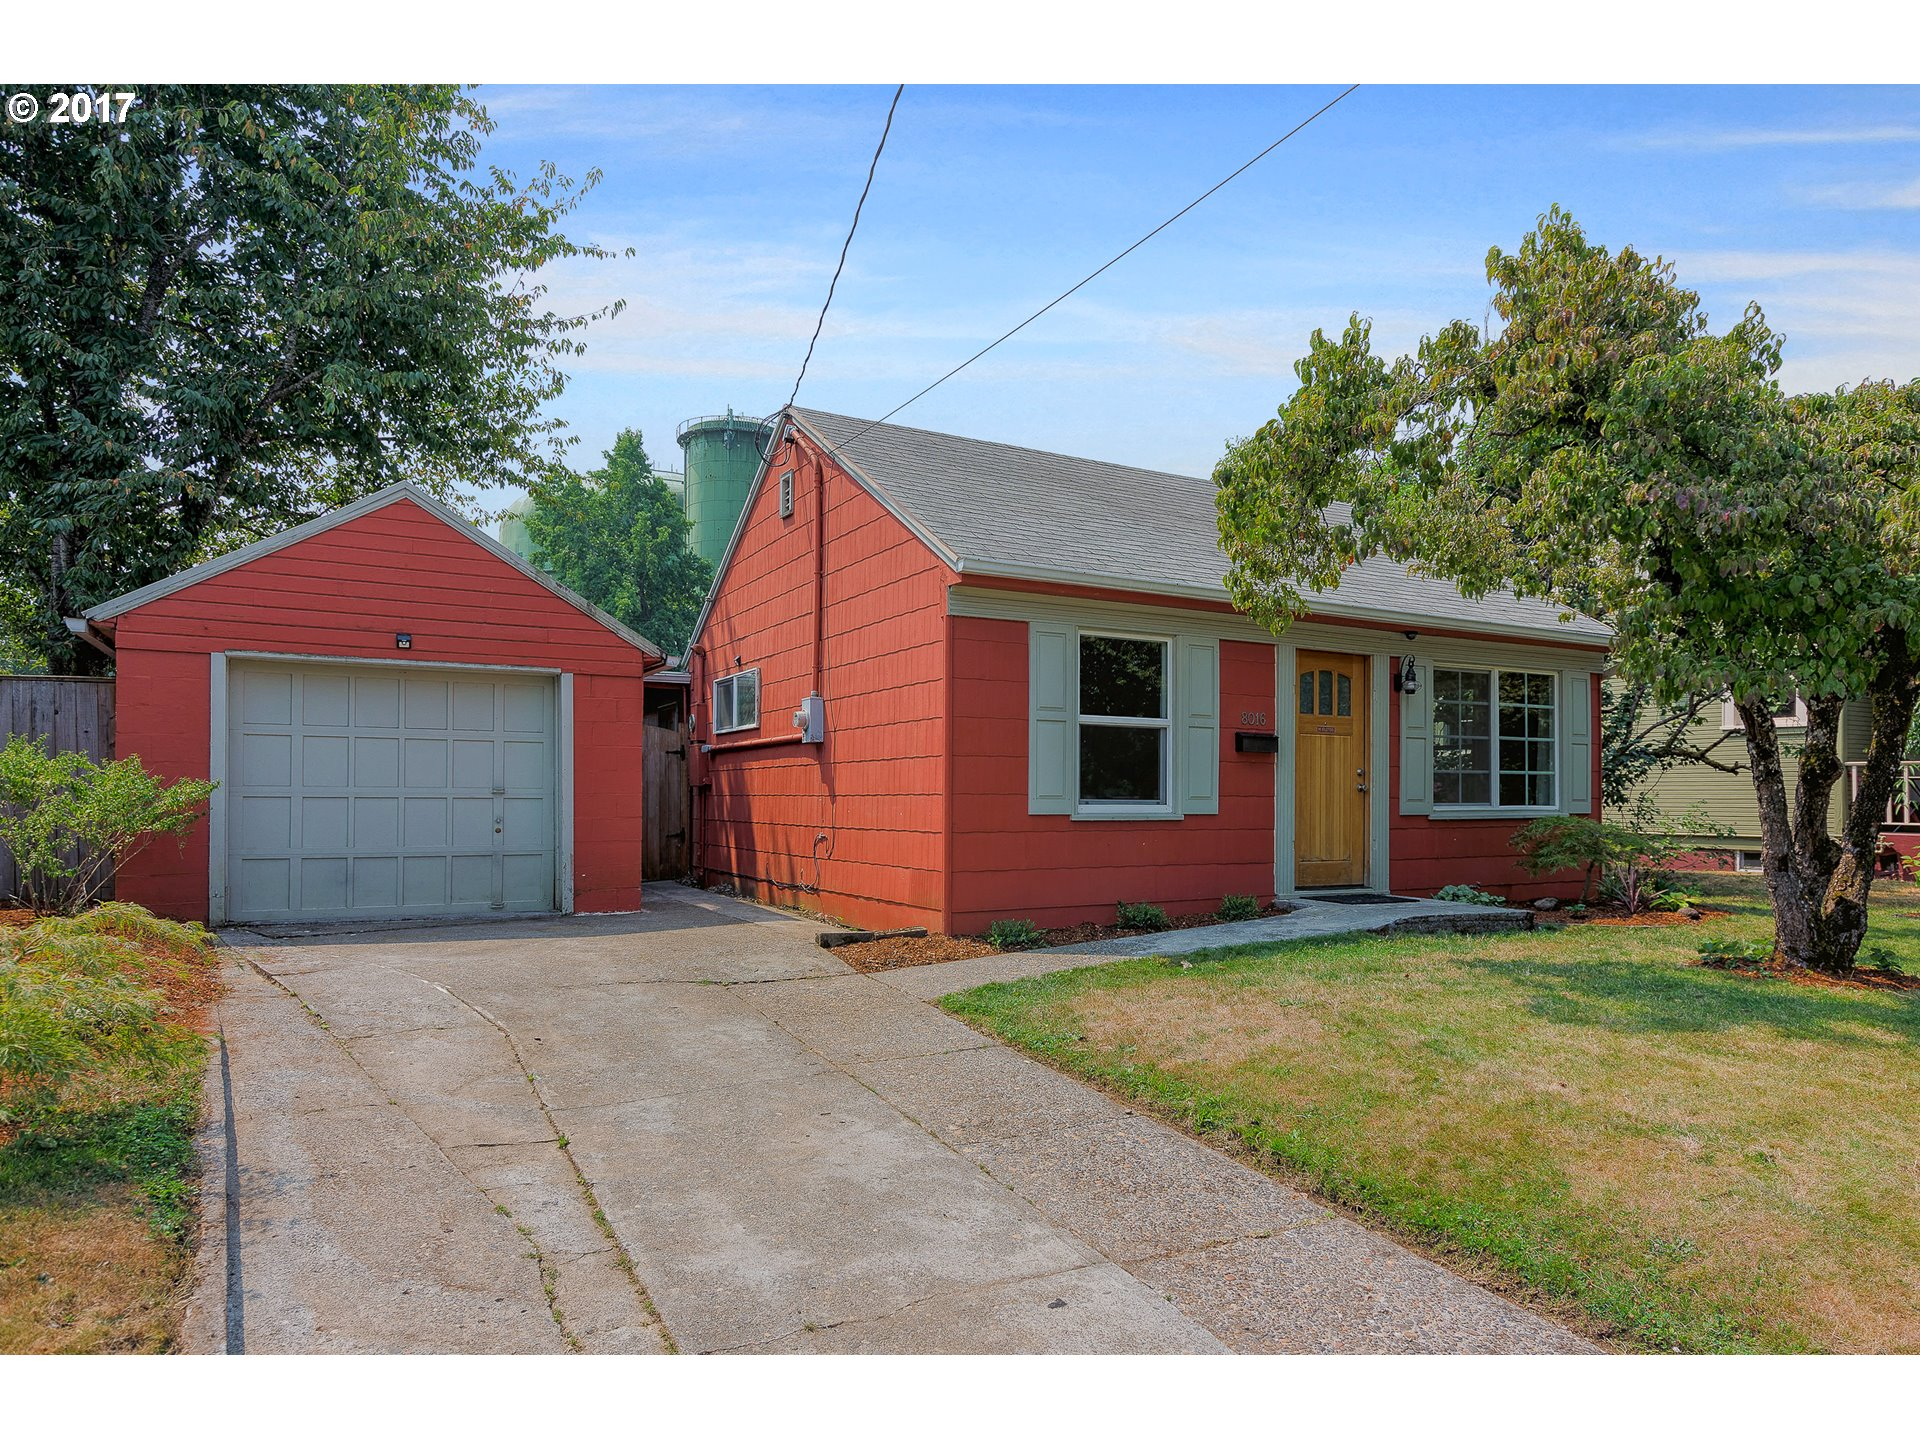 Adorable home in a great location! Well maintained 2 bedroom 1 bath home with a updated kitchen, bathroom and newer windows and ready for you to move in!! Fenced backyard with a patio and raised gardens is great for back yard BBQ's. Walk to Cathedral Park, downtown St. John's shops, cafes, restaurants, movie theater and public transportation! Walking score of 87!Open house Sunday 8/20/17 1pm-3pm!